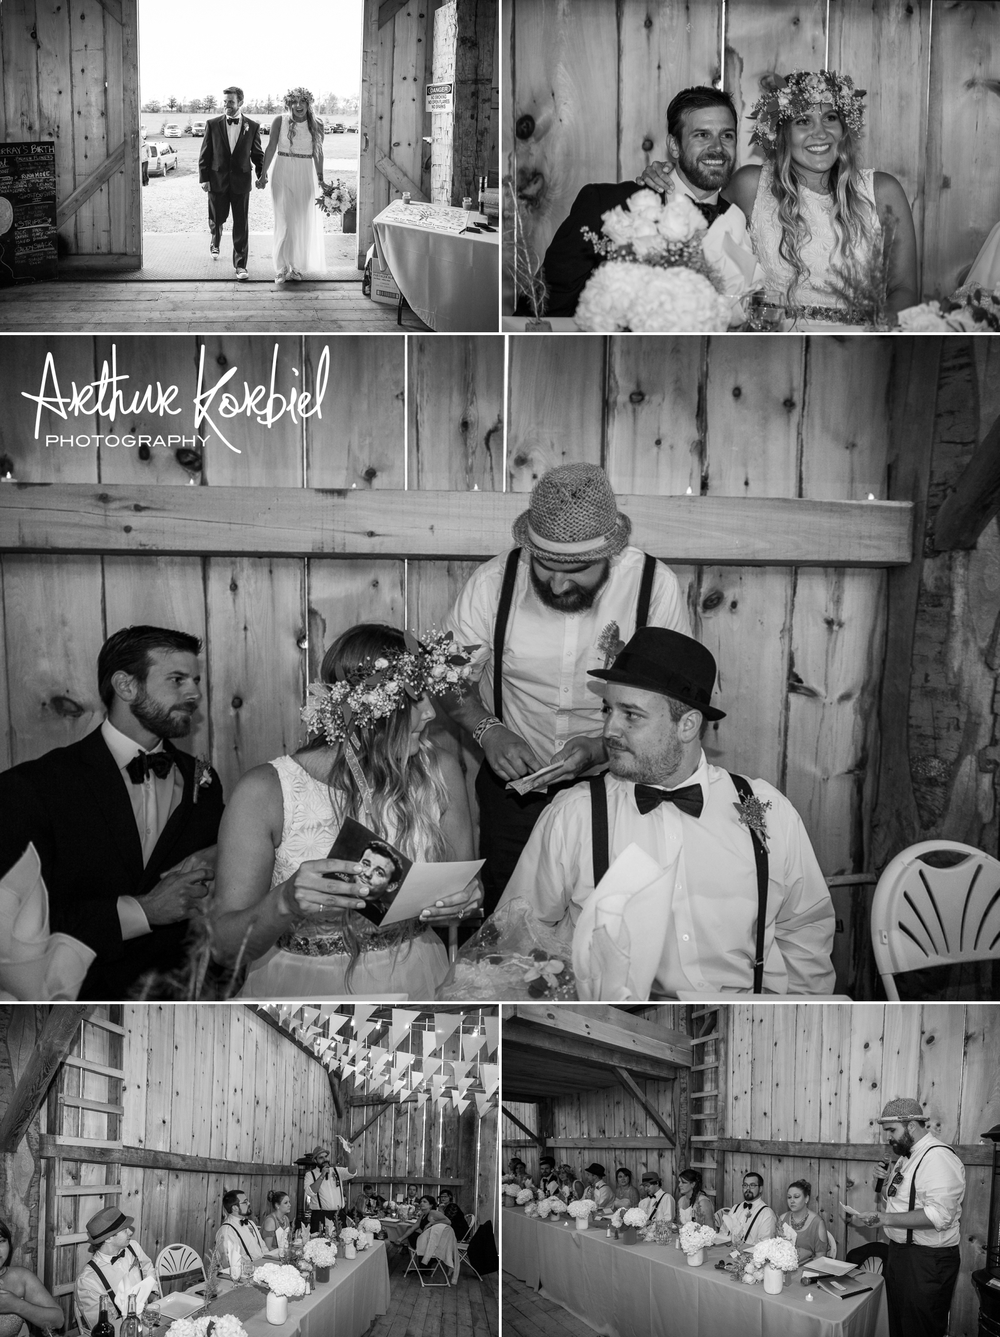 Arthur Korbiel Photography - London Engagement Photographer - Sauble Beach Barn Wedding - Samantha & Dan_011.jpg